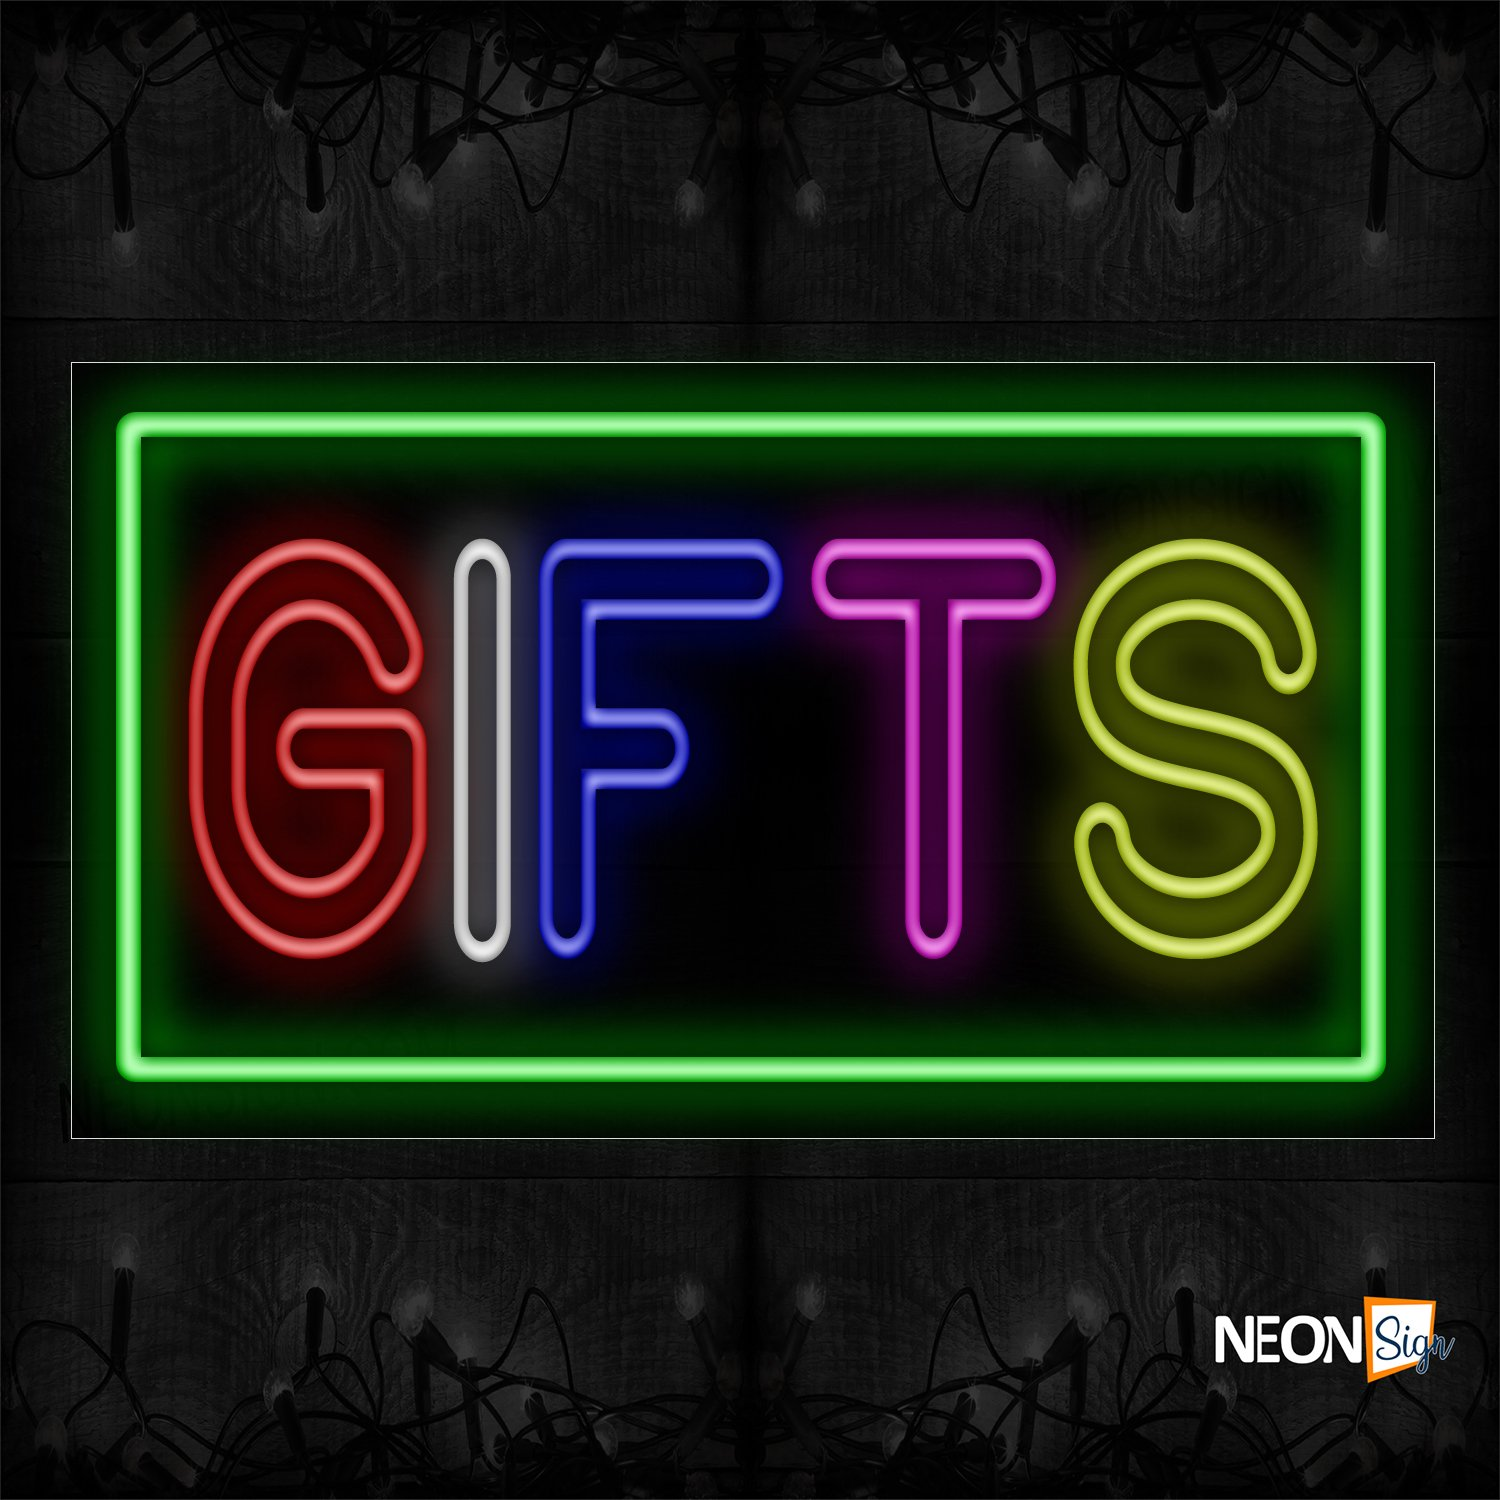 Image of 11078 Double Stroke Colorful Gifts With Green Border Neon Sign_20x37 Black Backing